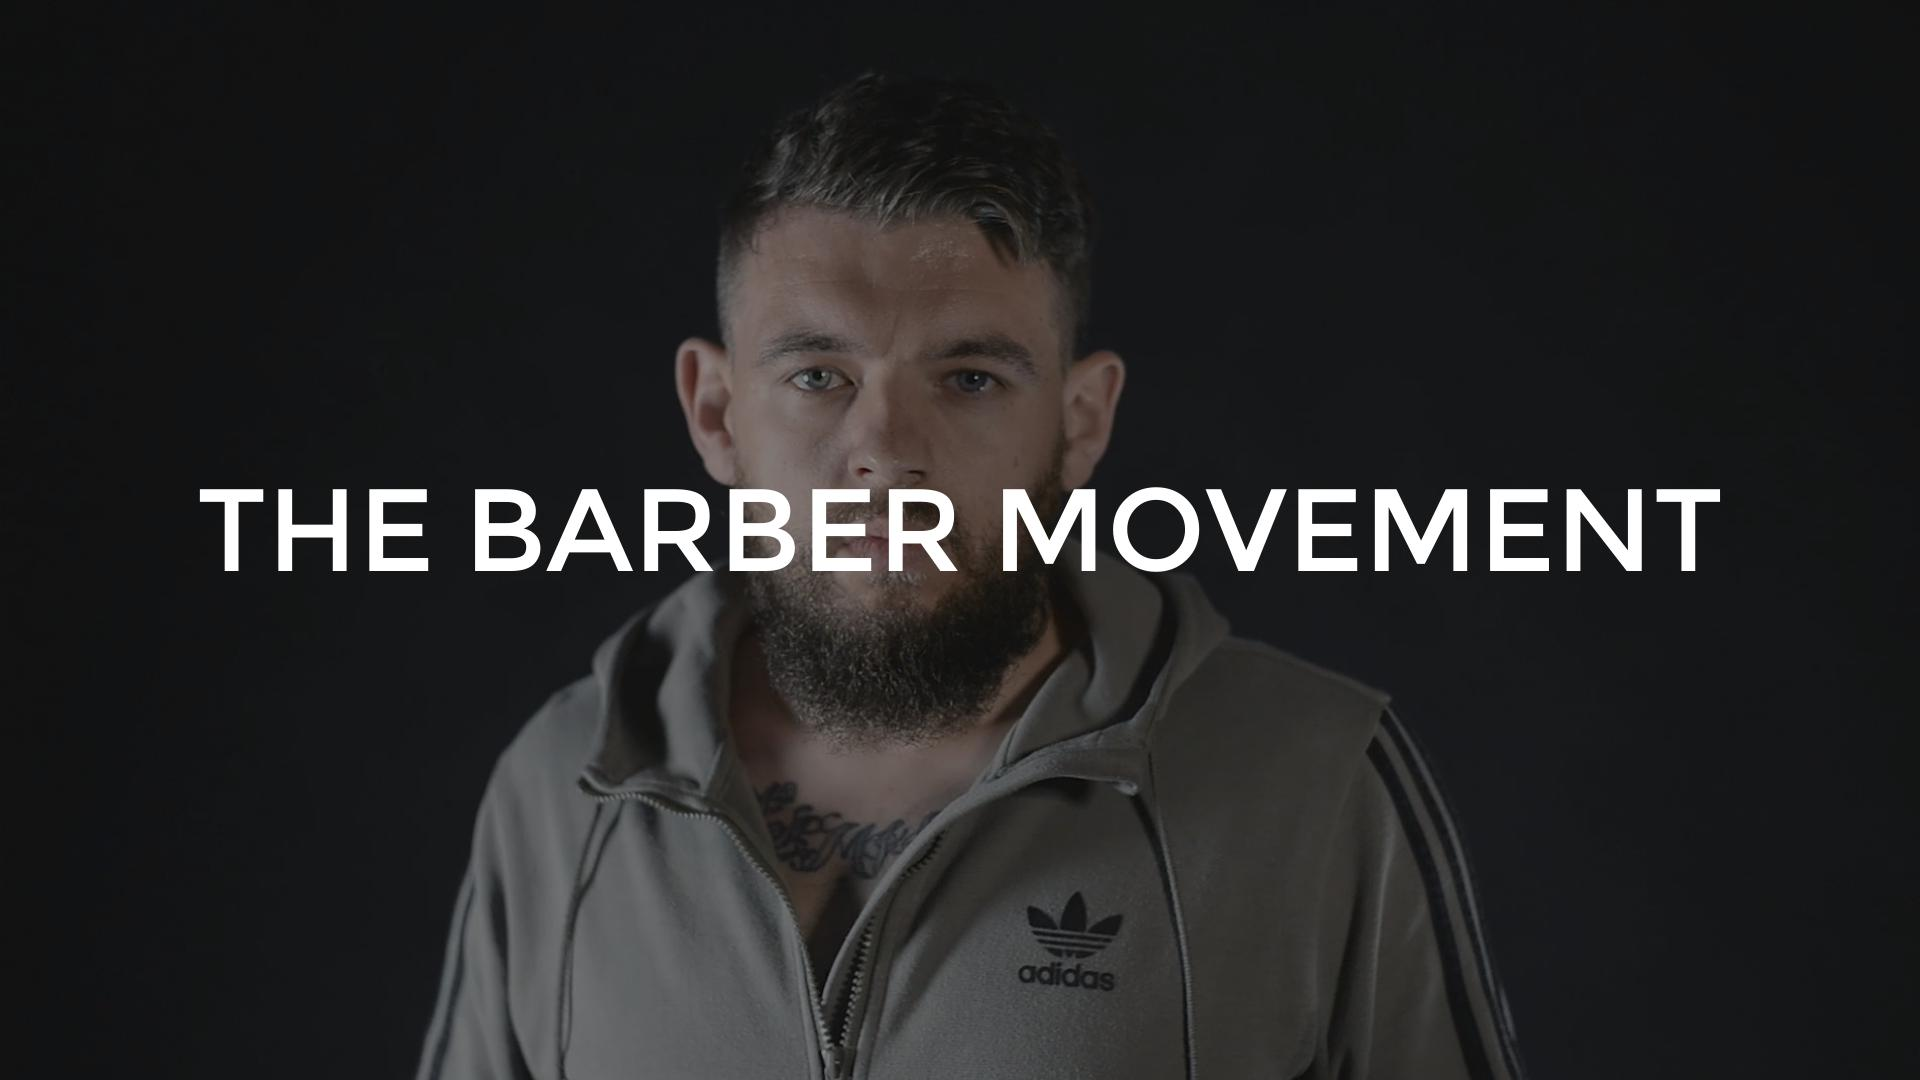 The Barber Movement